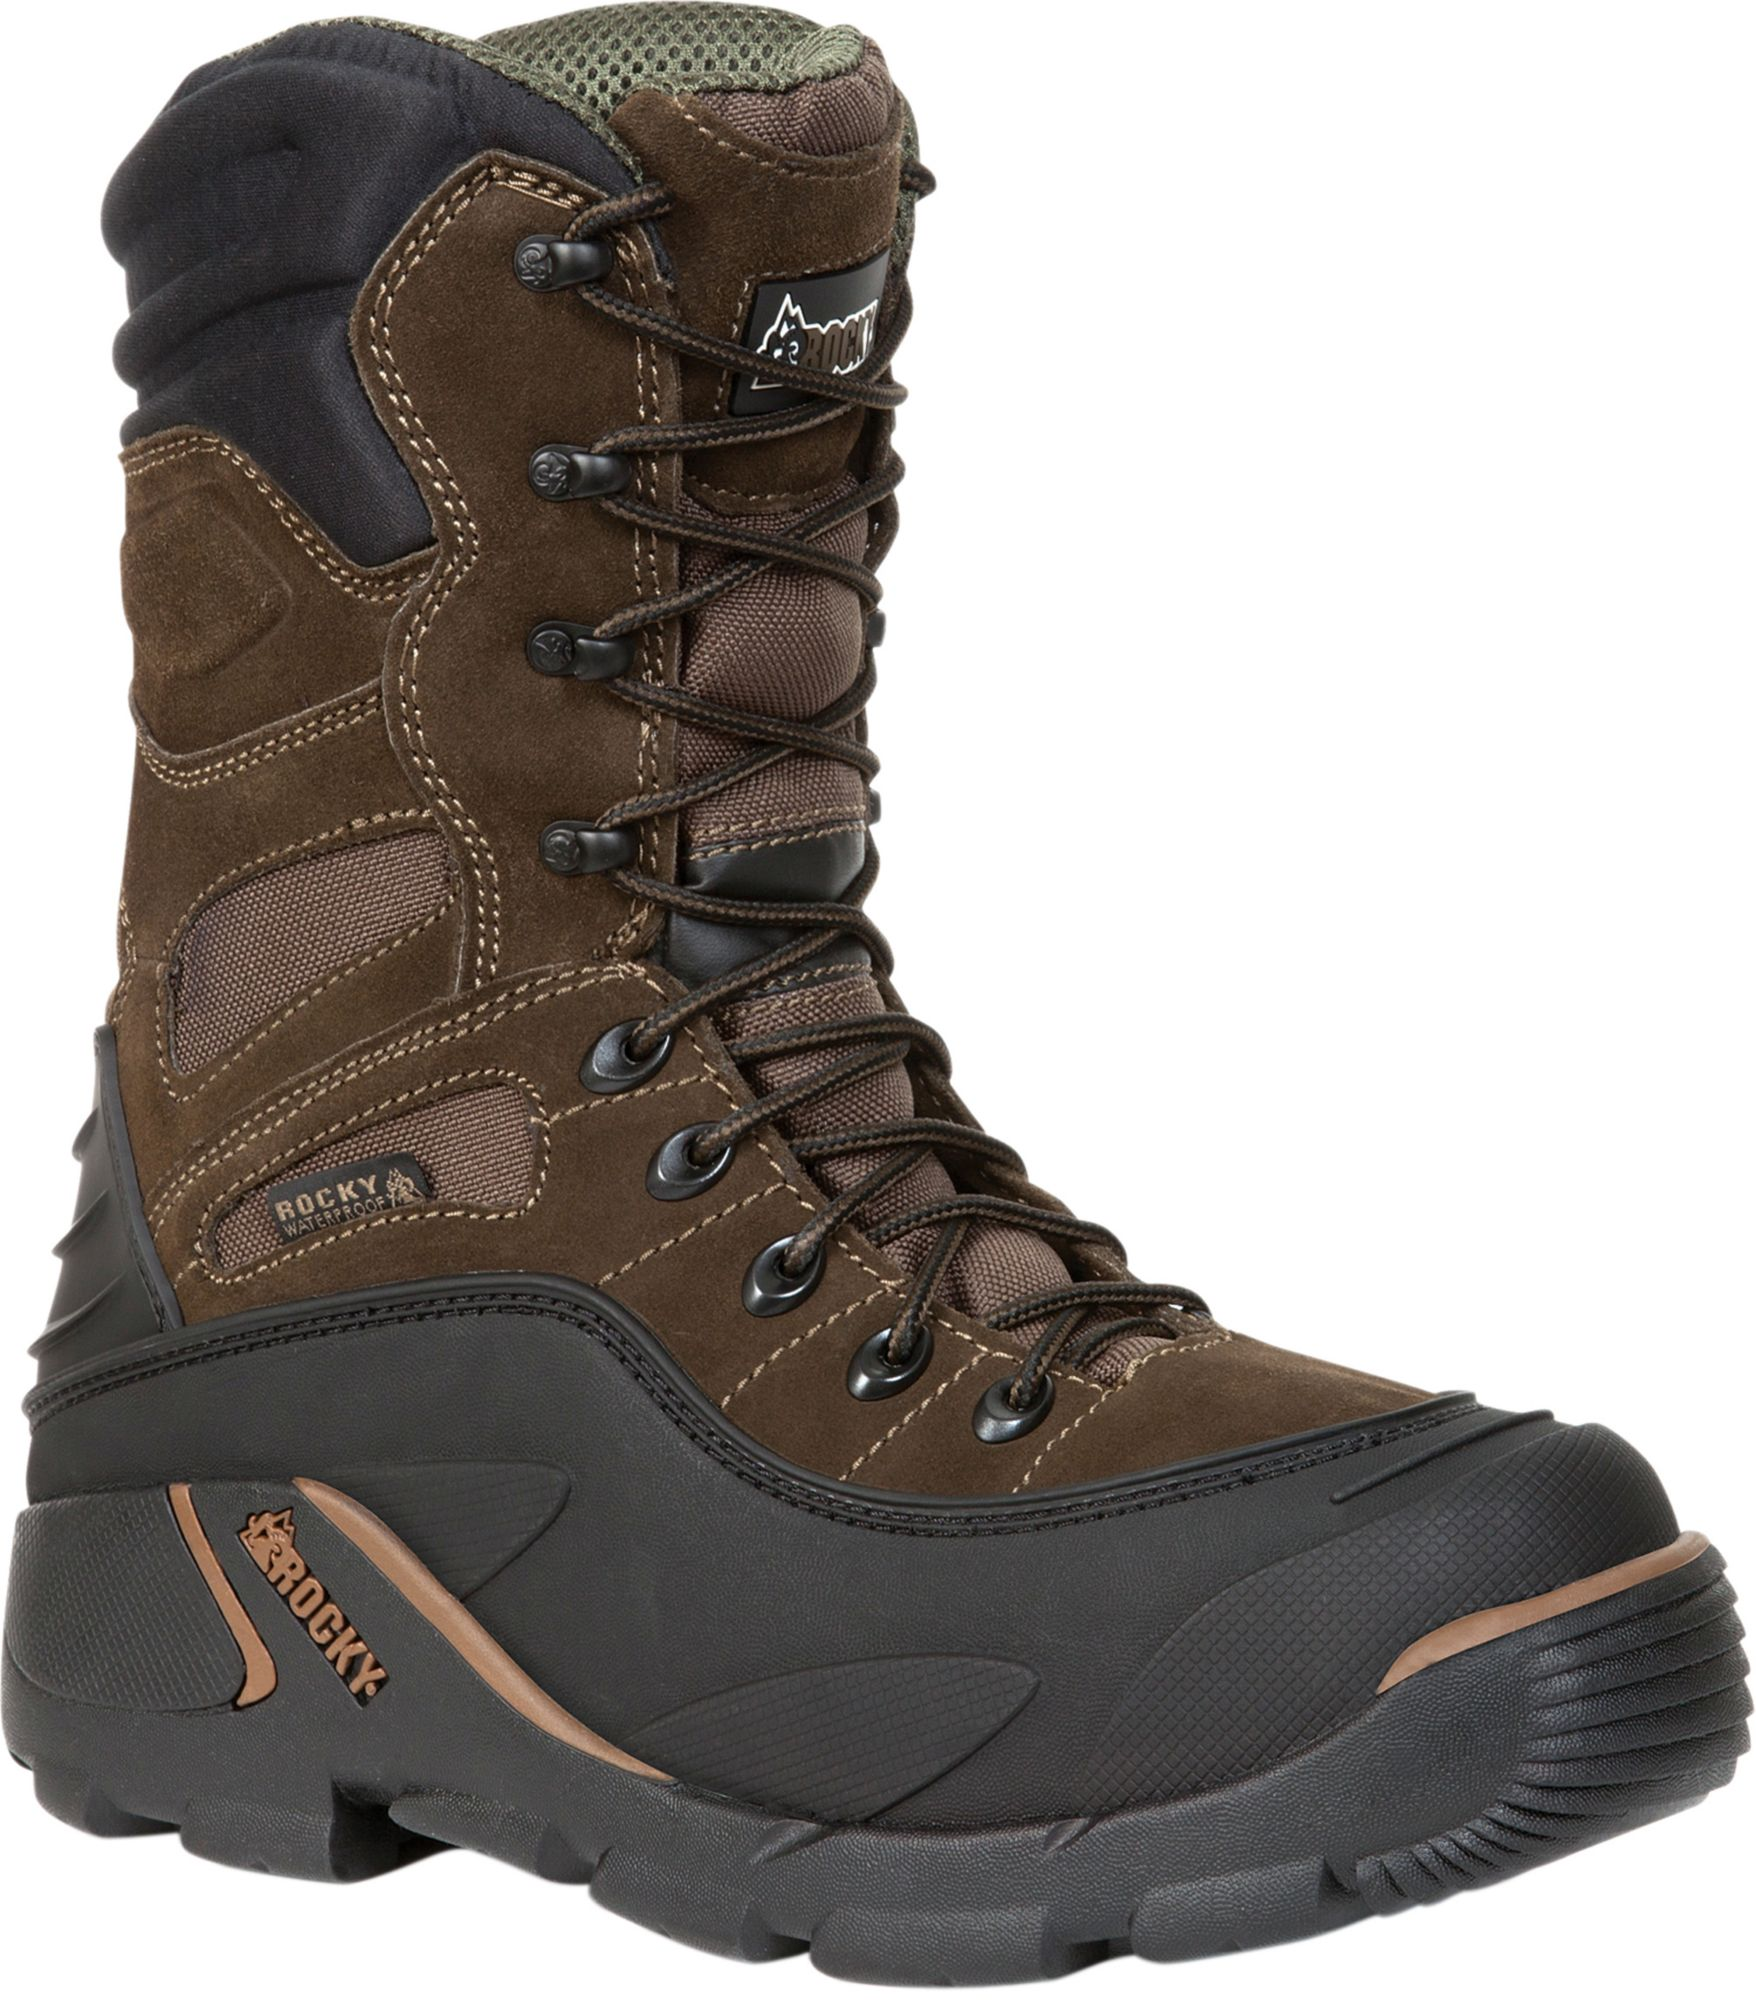 Rocky Men's Blizzard Stalker Pro Waterproof 1200g Winter Boots ...